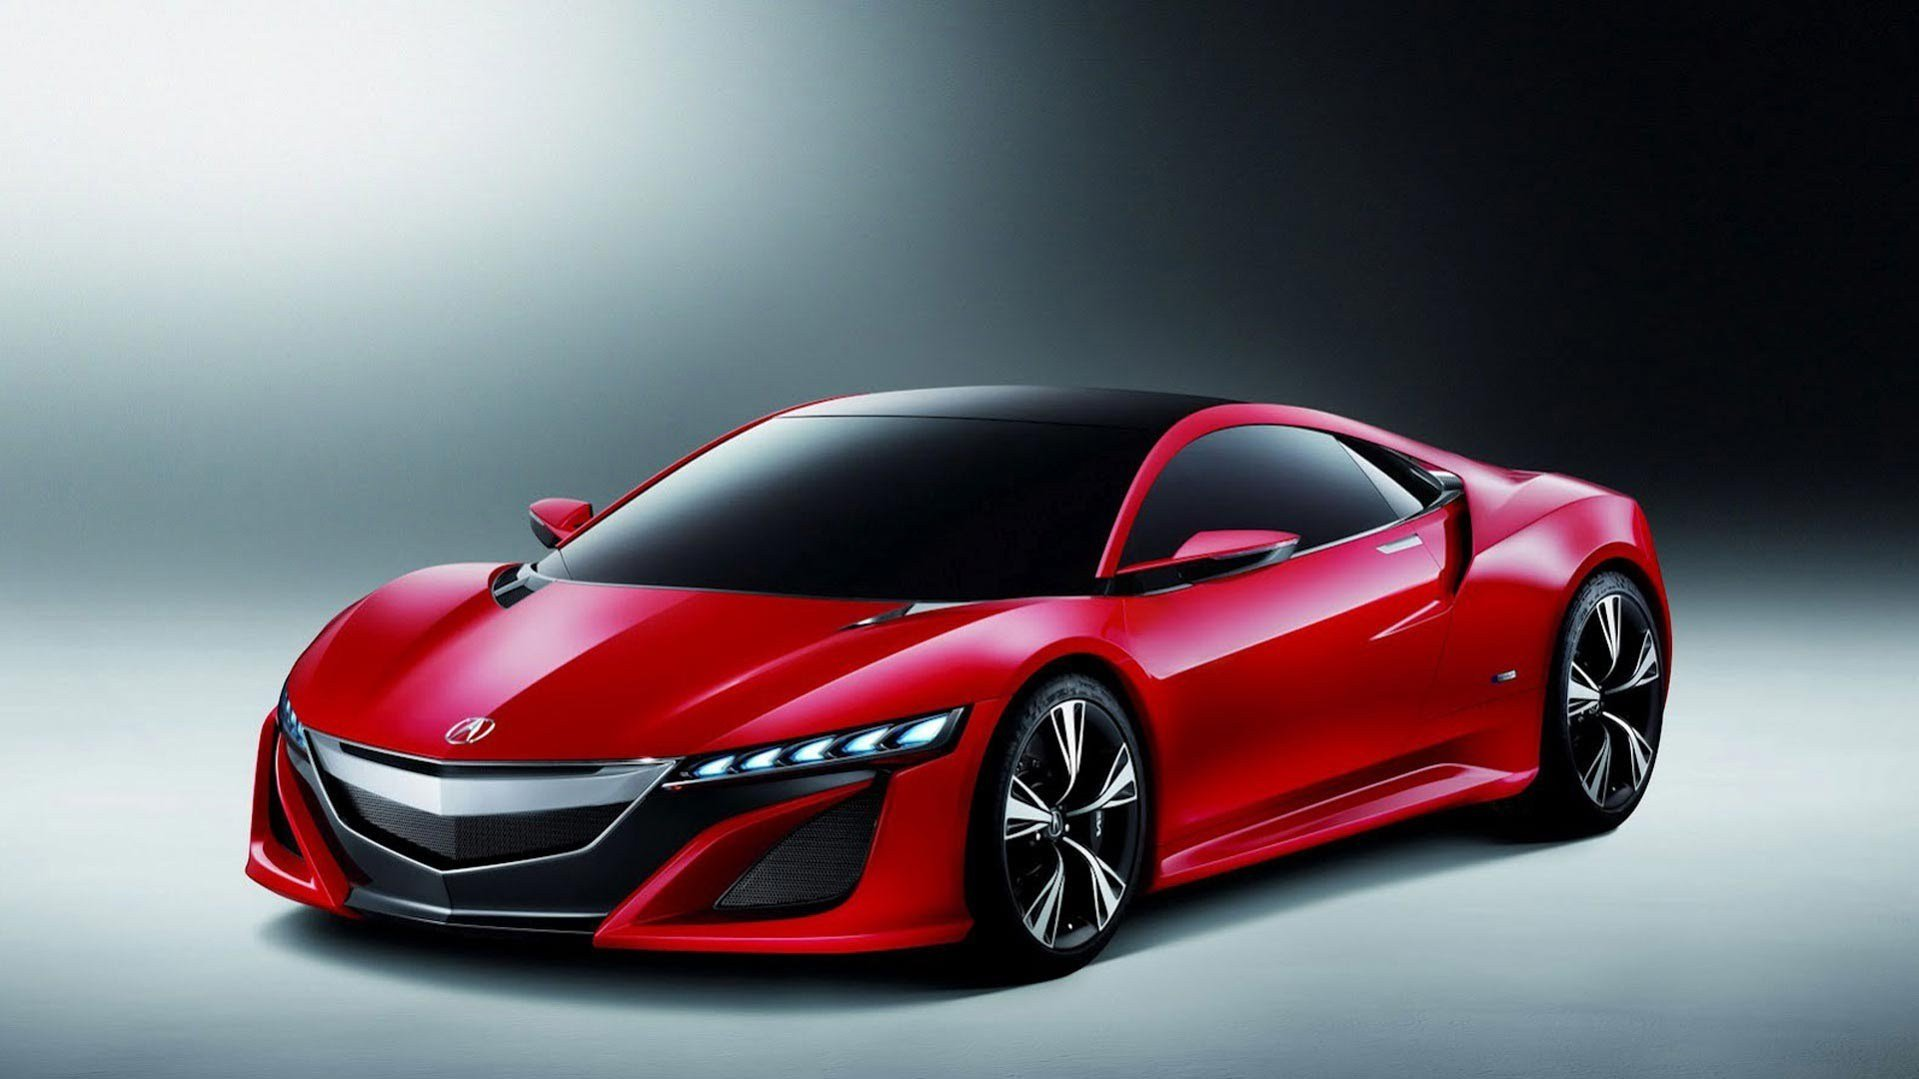 Latest Acura Nsx Cool Hd Desktop Wallpapers 4K Hd Free Download